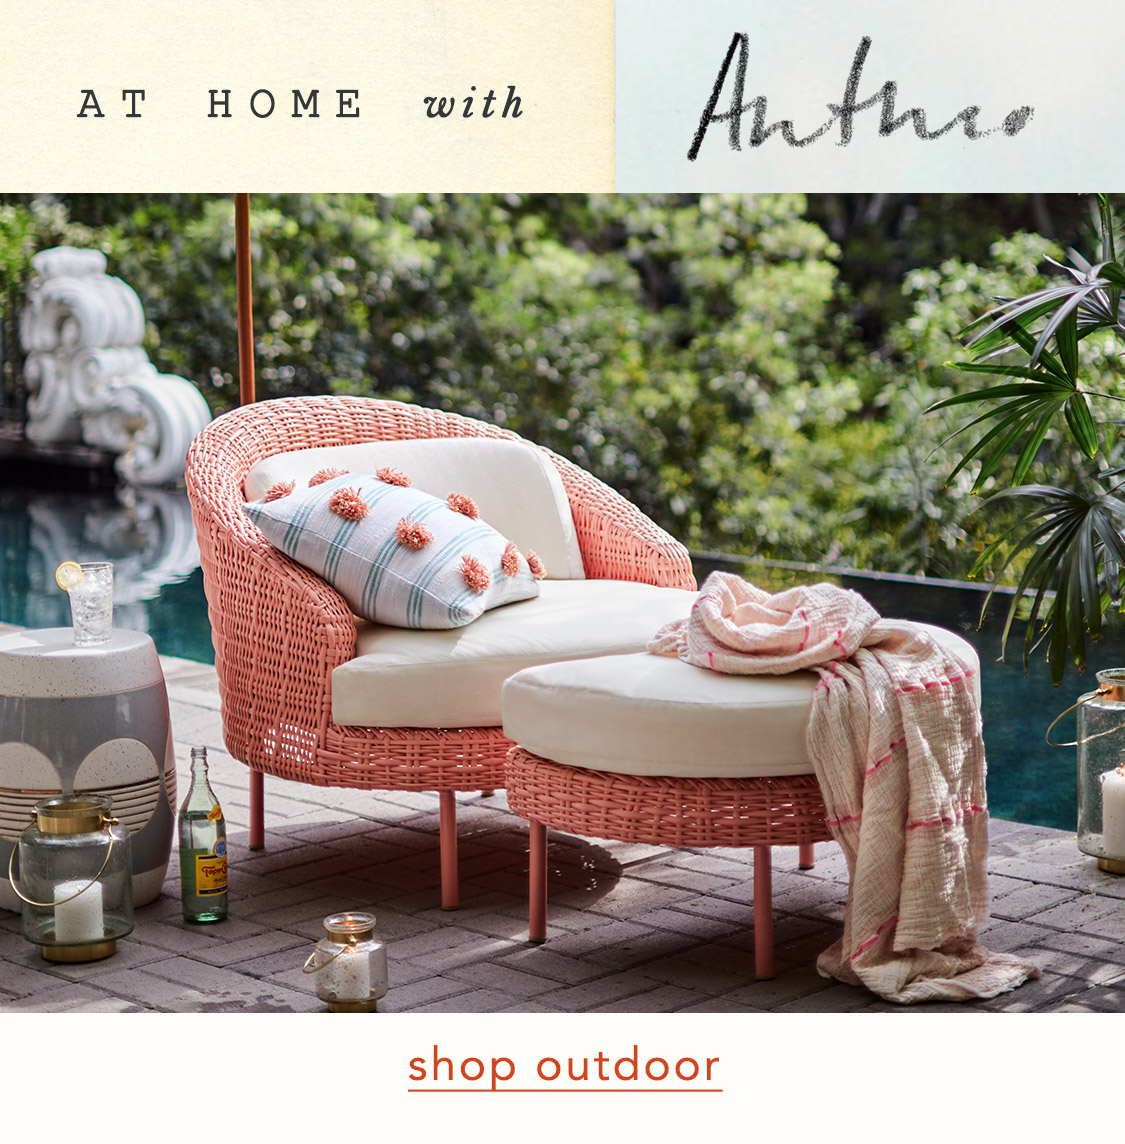 Online Sofa Store Anthropologie Women S Clothing Accessories Home